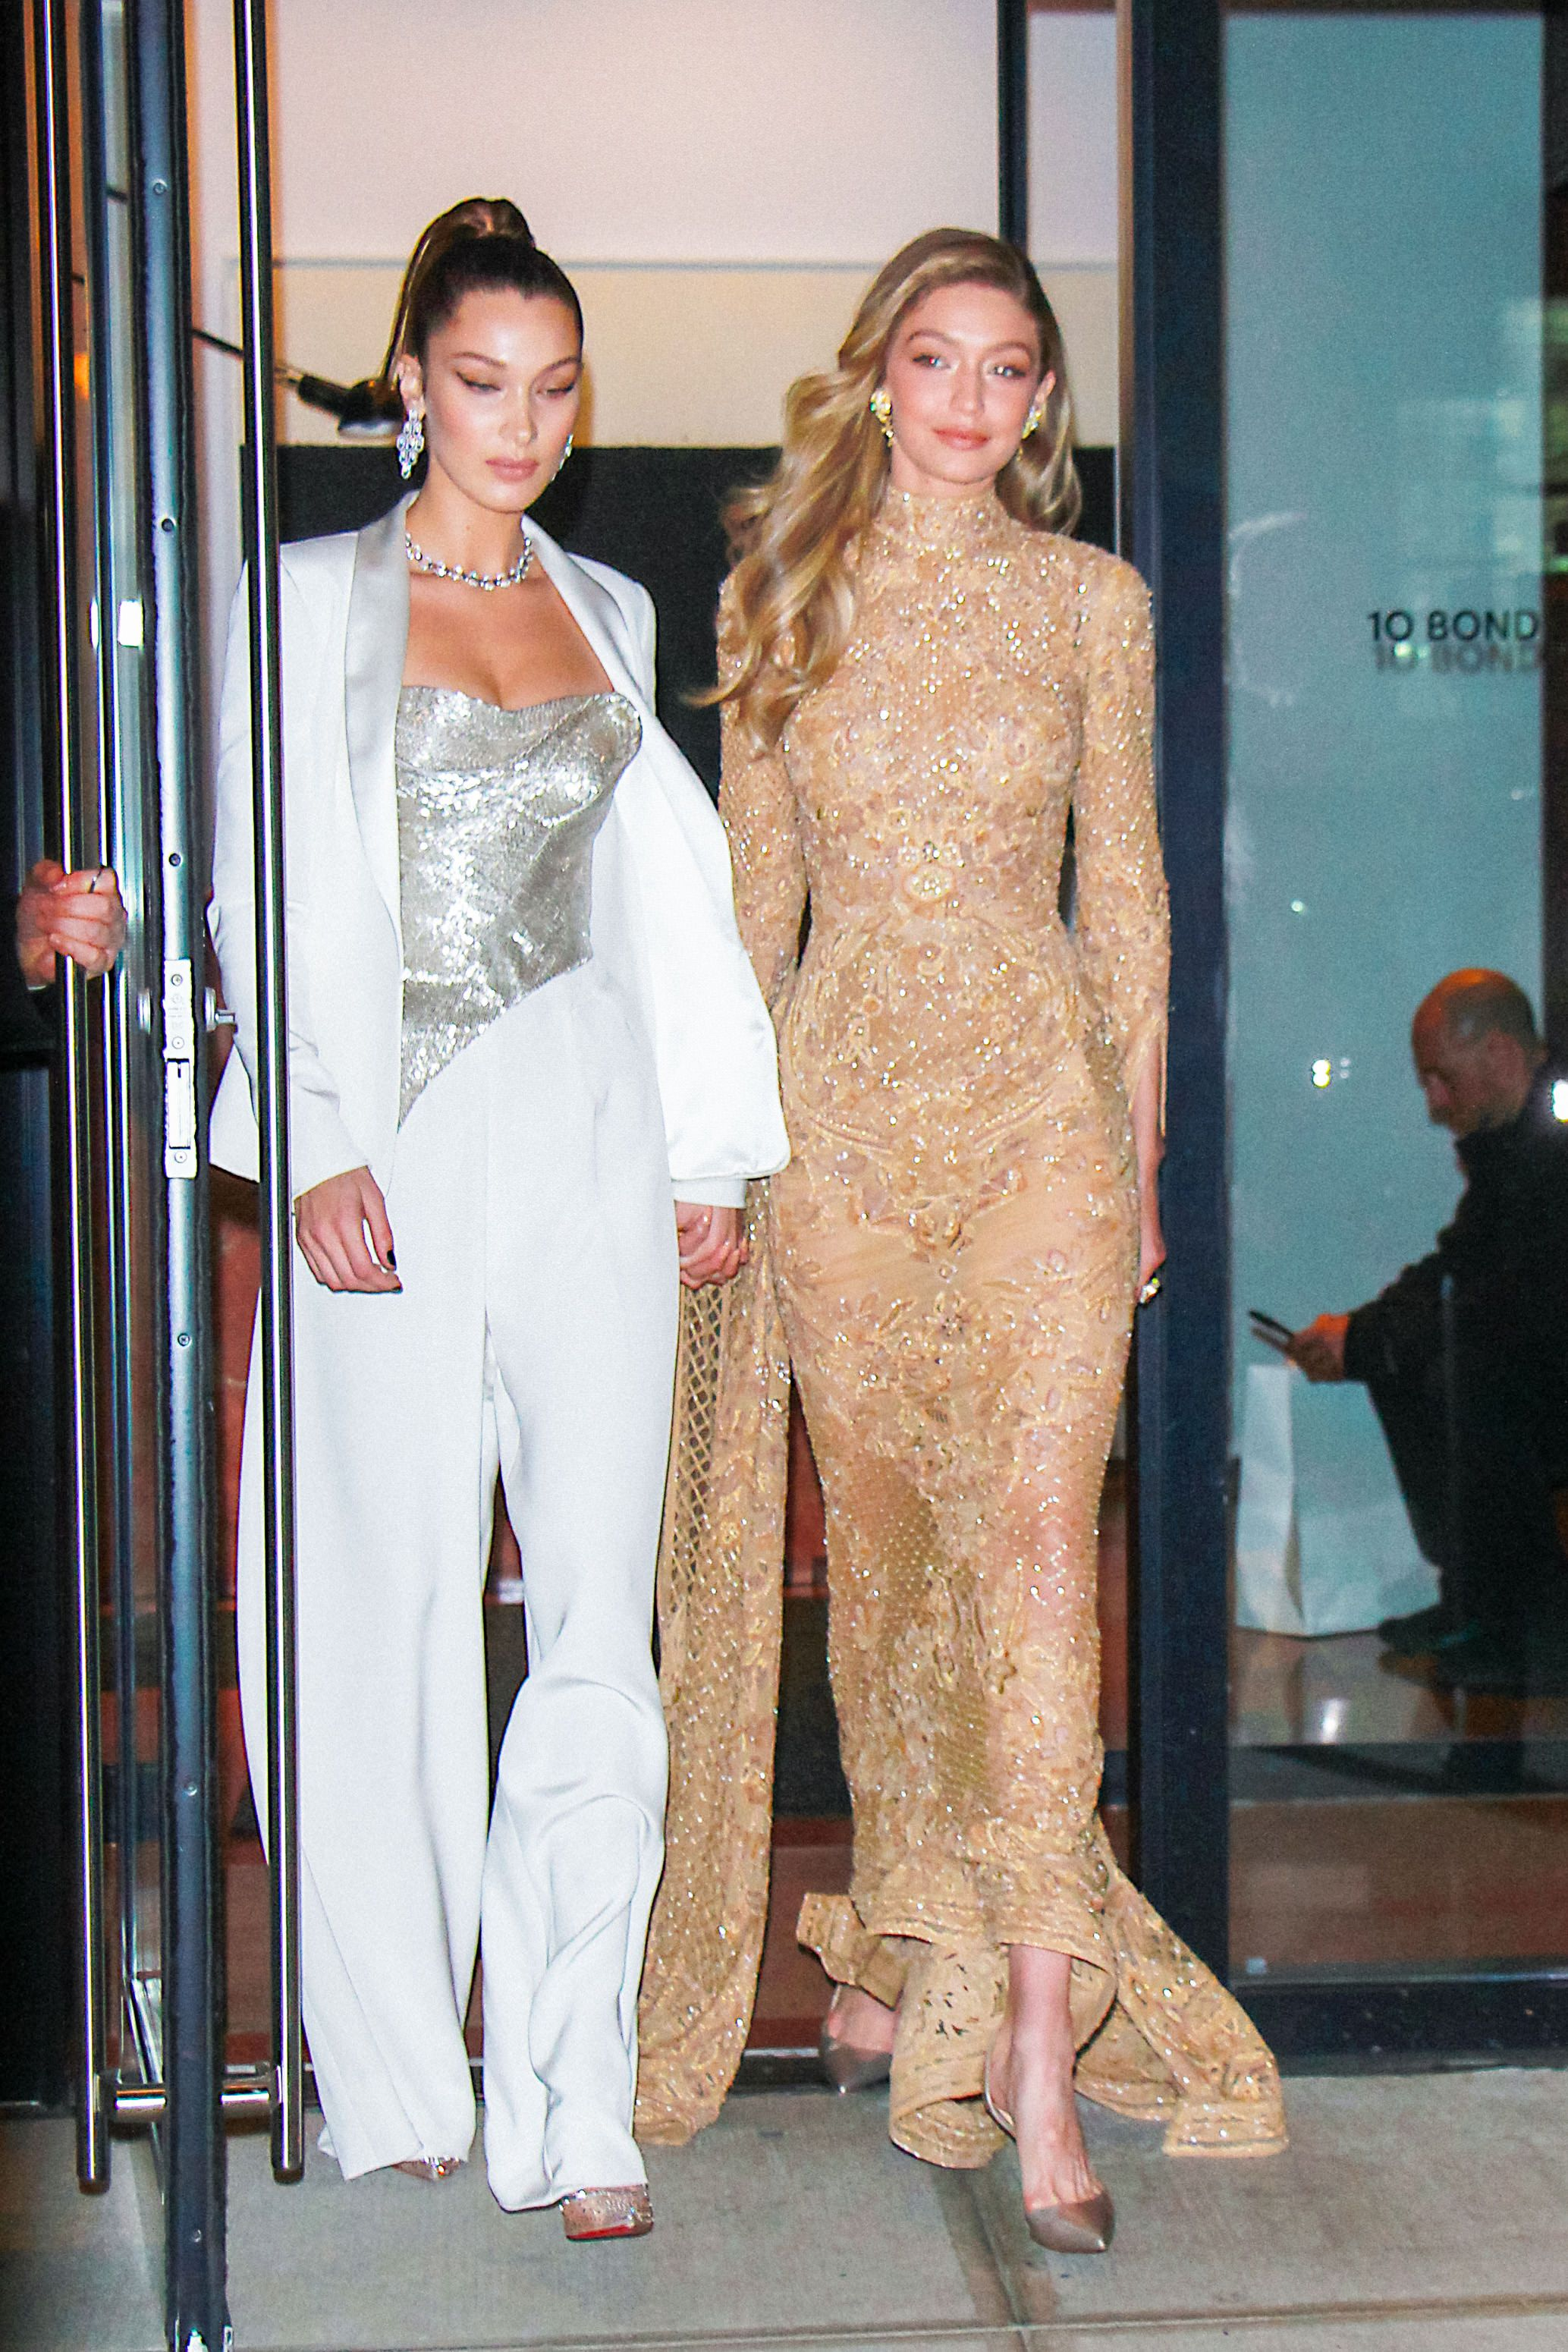 November 13, 2017 The Hadid sisters left Gigi's apartment in fancy ensembles for the 2017 Glamour Women of the Year Awards. Gigi wore a Zuhair Murad Couture dress while Bella wore a Cristina Ottaviano bustier and pantsuit set.